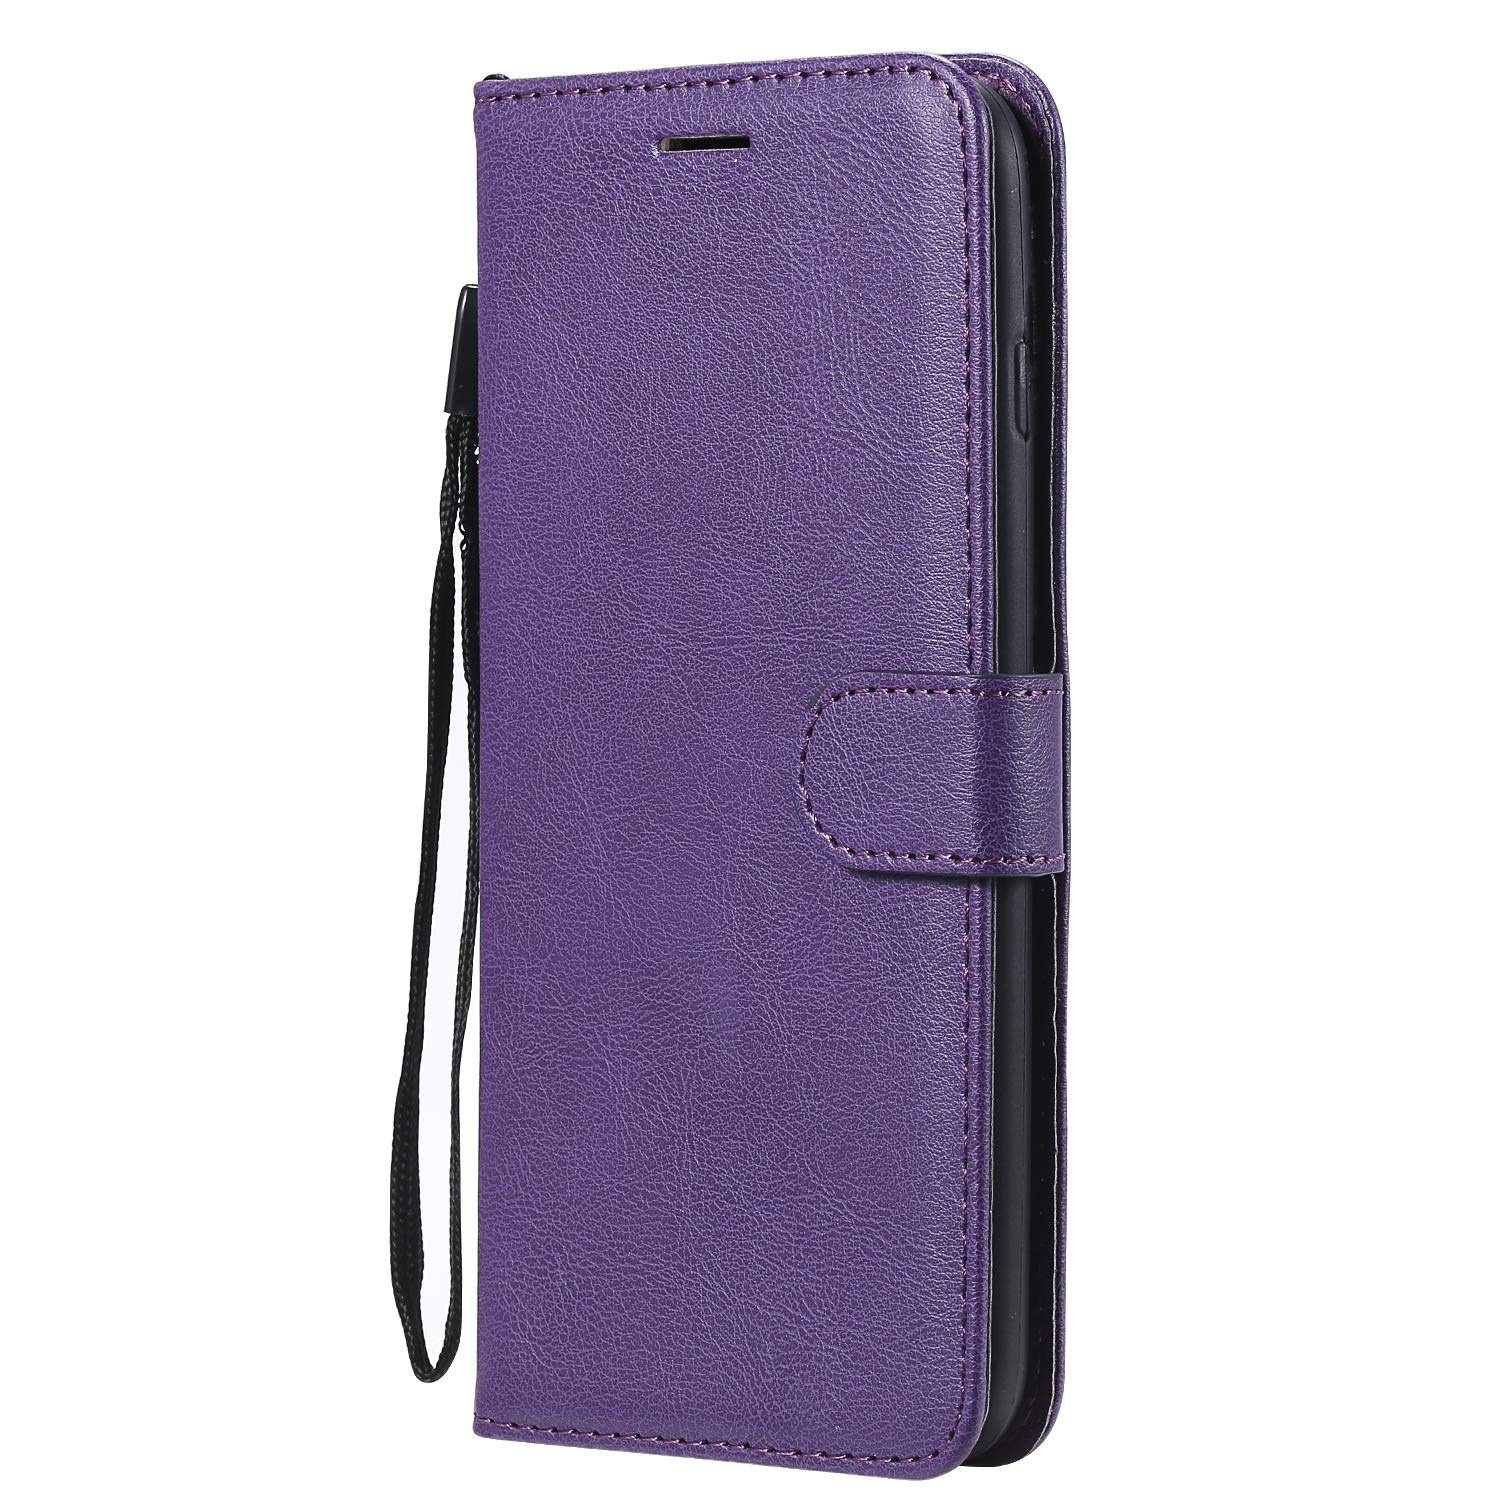 iPhone 8 Plus Case, AIIYG DS Classic Pure Color [Kickstand Feature] Flip Folio Leather Wallet Case with ID and Credit Card Pockets for Apple iPhone 7/8 Plus 5.5 inch Purple